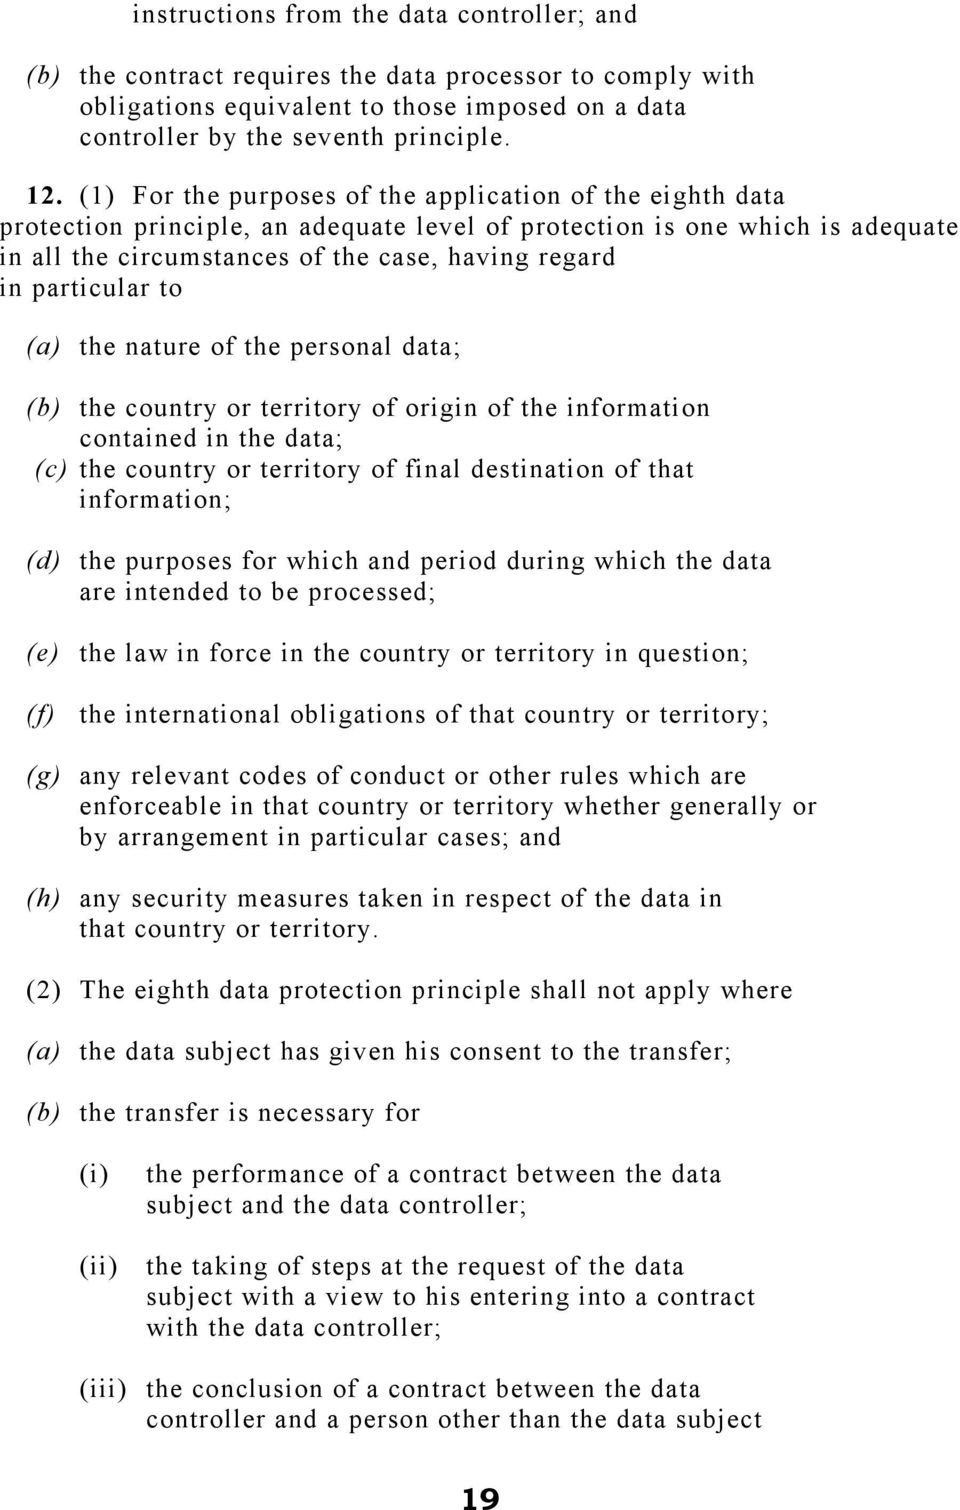 particular to (a) the nature of the personal data; (b) the country or territory of origin of the information contained in the data; (c) the country or territory of final destination of that